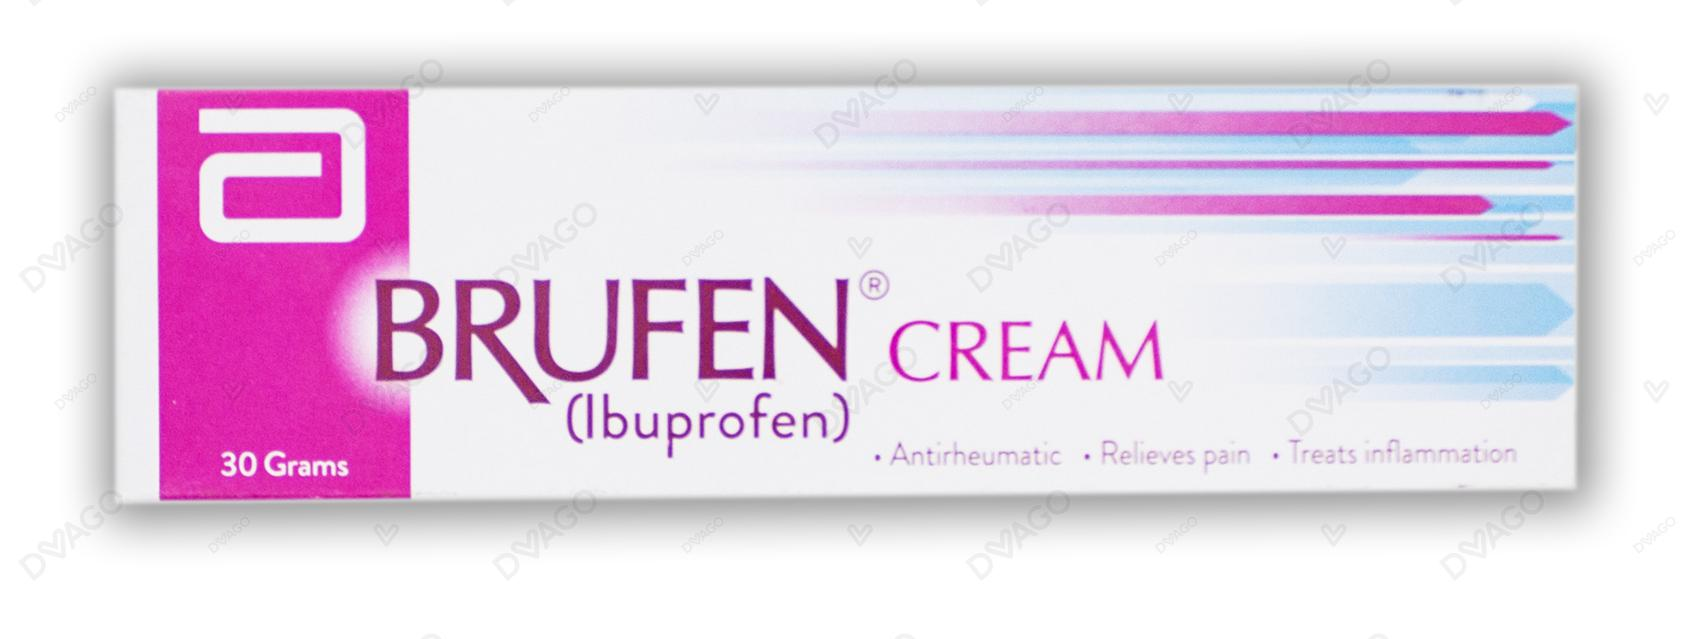 Brufen Cream 30gs